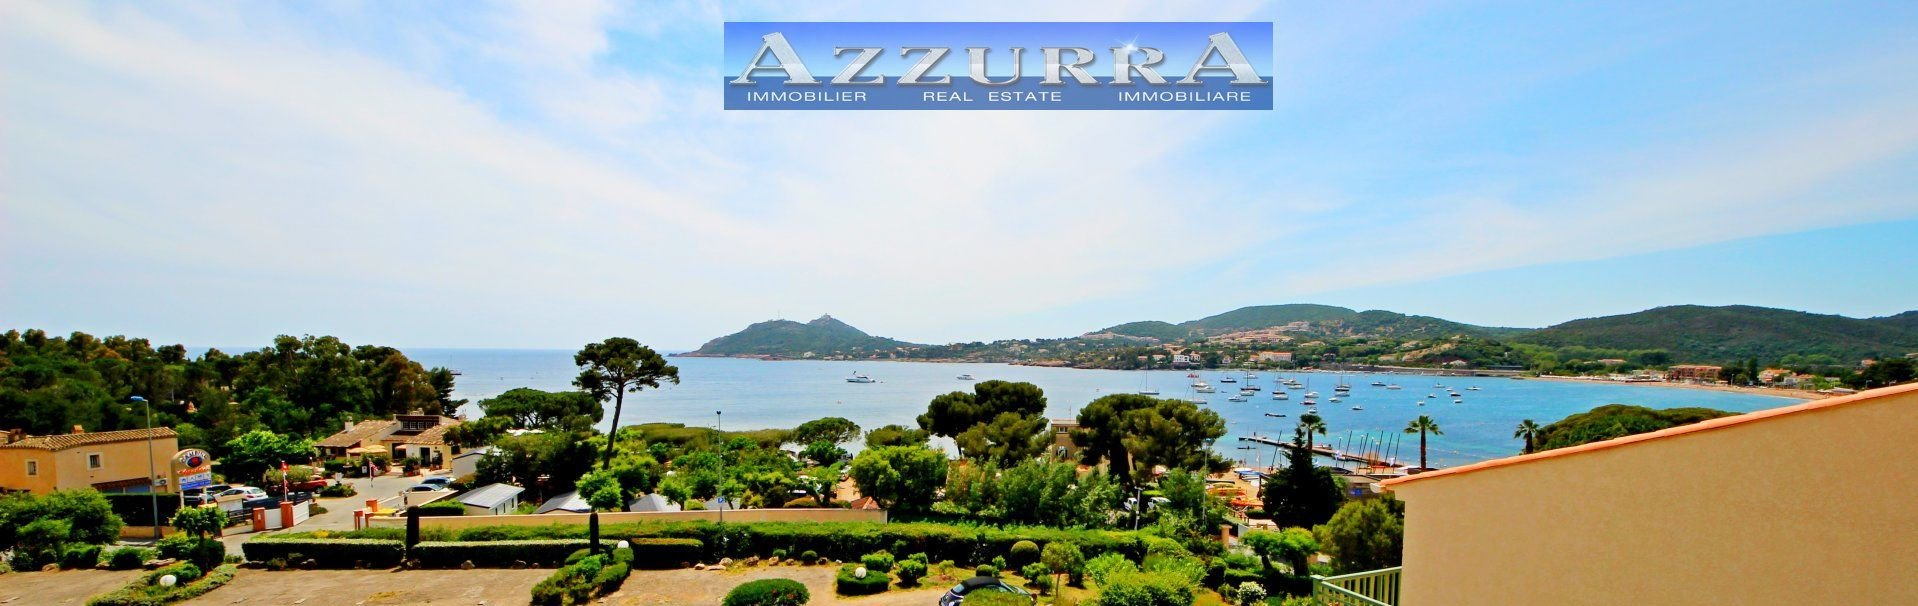 AGAY 2 BEDROOMS FLAT SEA VIEW